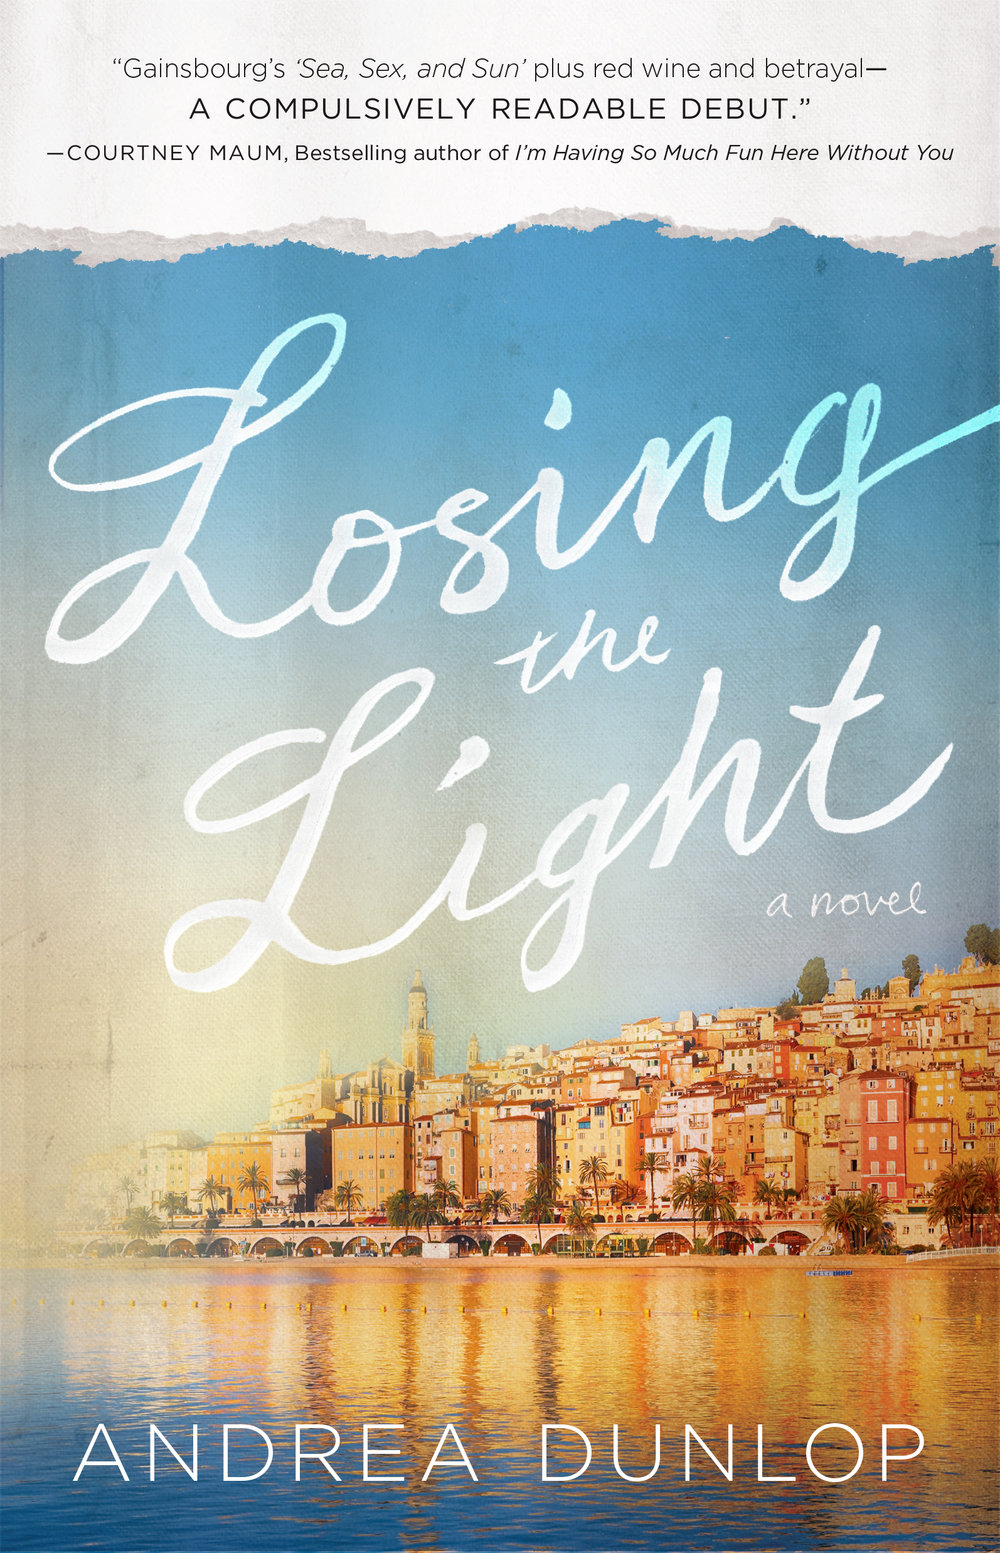 LOSING THE LIGHT  - Atria Books; February 2016 Thirty-year-old Brooke Thompson prepares to leave Manhattan and her 20's behind to move upstate with her fiancé, when she receives a friend's startling invitation to a party honoring French photographer Alex de Persaud. His name pulls her headlong into a glittering, painful past she has long tried to forget. At the party she finds that the man who was once her single-minded obsession doesn't remember her. Shattered by his apparent disavowal of their time together, Brooke still can't resist accepting his invitation for a date the following week. Catapulted back to her youth, Brooke relives the events of a decade before when she spent a year in France following a disastrous affair with a professor. There she develops a deep and complicated friendship with Sophie, a fellow American and stunning blonde whose golden girl façade hides a precarious emotional fragility. Their lives are forever changed when they meet sly, stylish French student Veronique and her impossibly sexy older cousin, Alex. The cousins draw the two girls into an irresistible world of art, money, decadence and ultimately, a disastrous love triangle that consumes them both. Of the two of them, only Brooke ever makes it home.